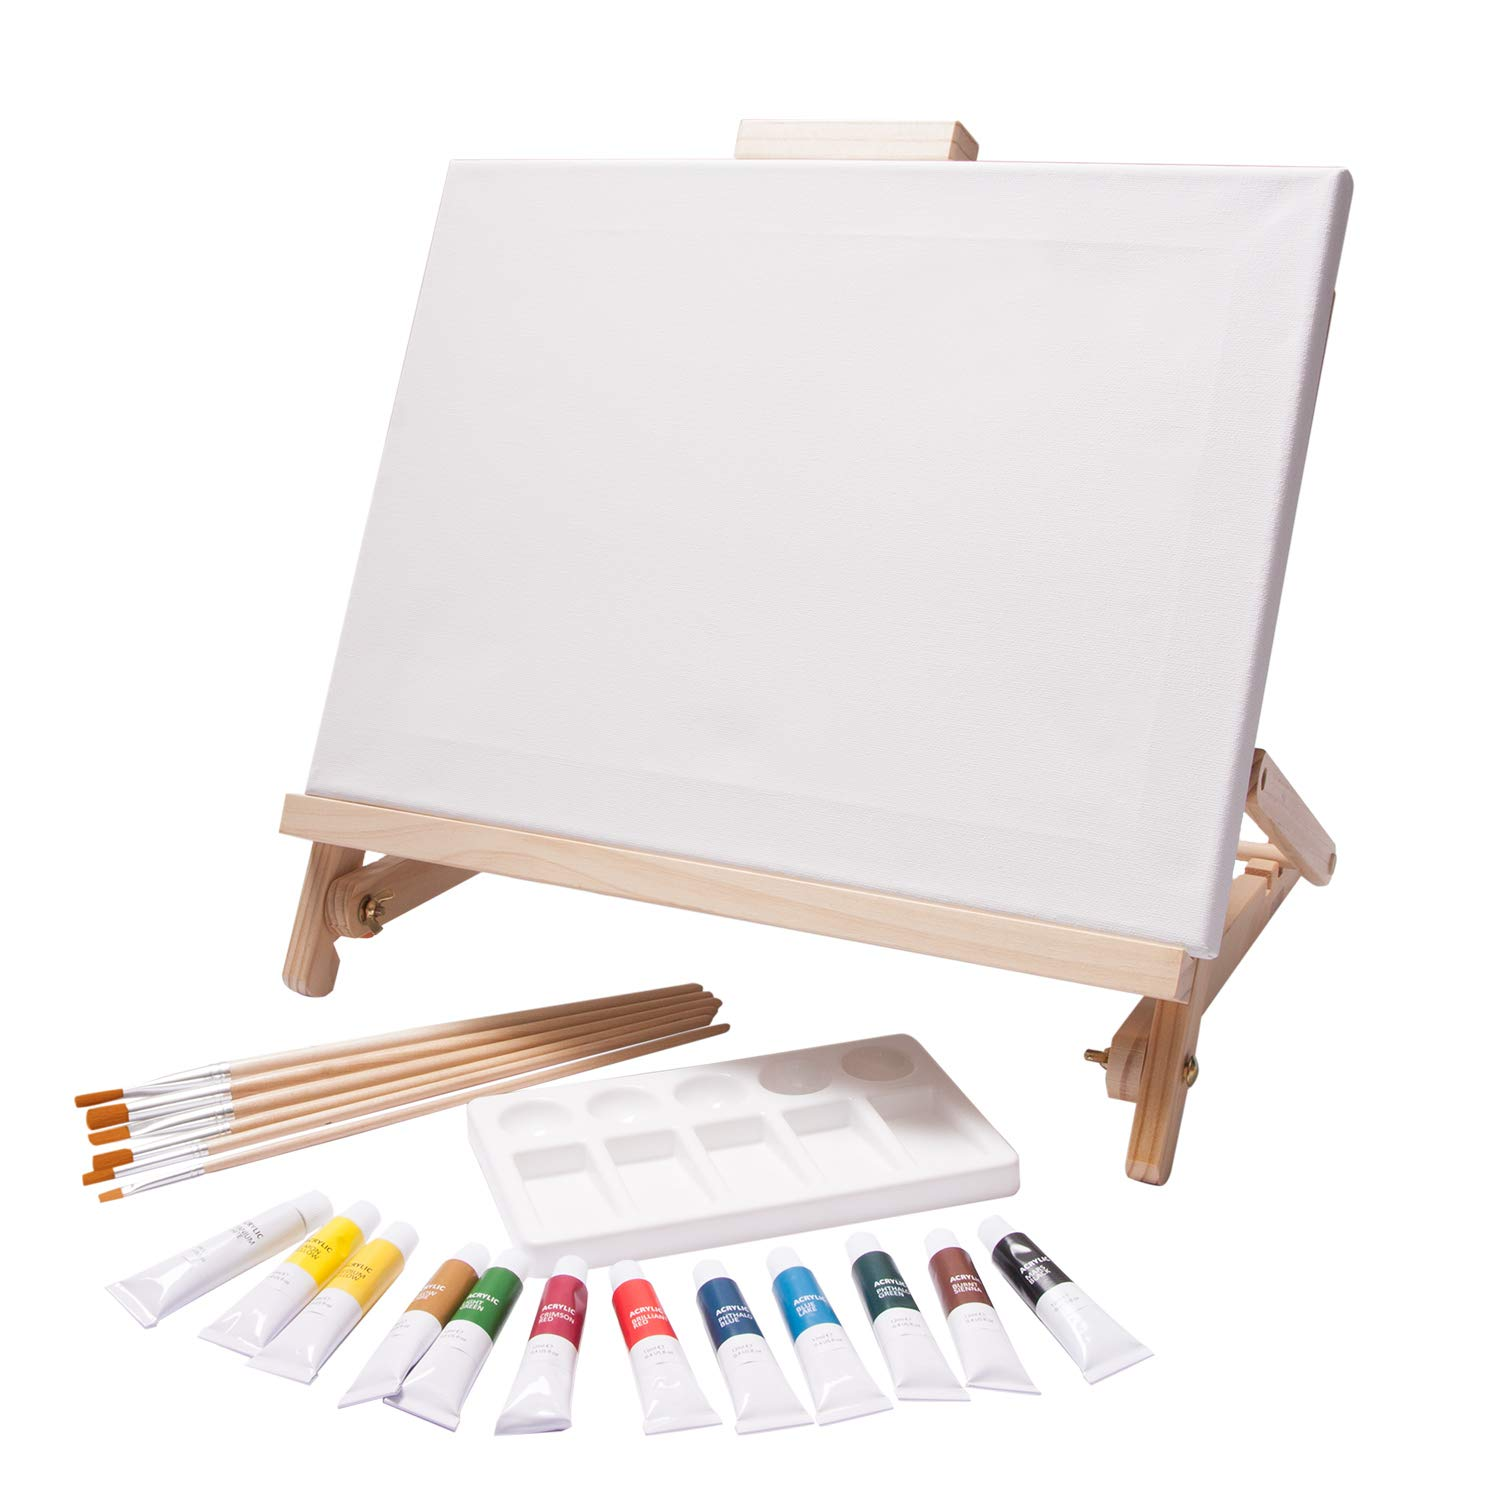 Sketching and Drawing Supplies 12 Tubes Canvas Desk Easel with Acrylic Paints Paintbrushes /& Palette for Painting Table Top Adjustable Wooden Desktop Easel